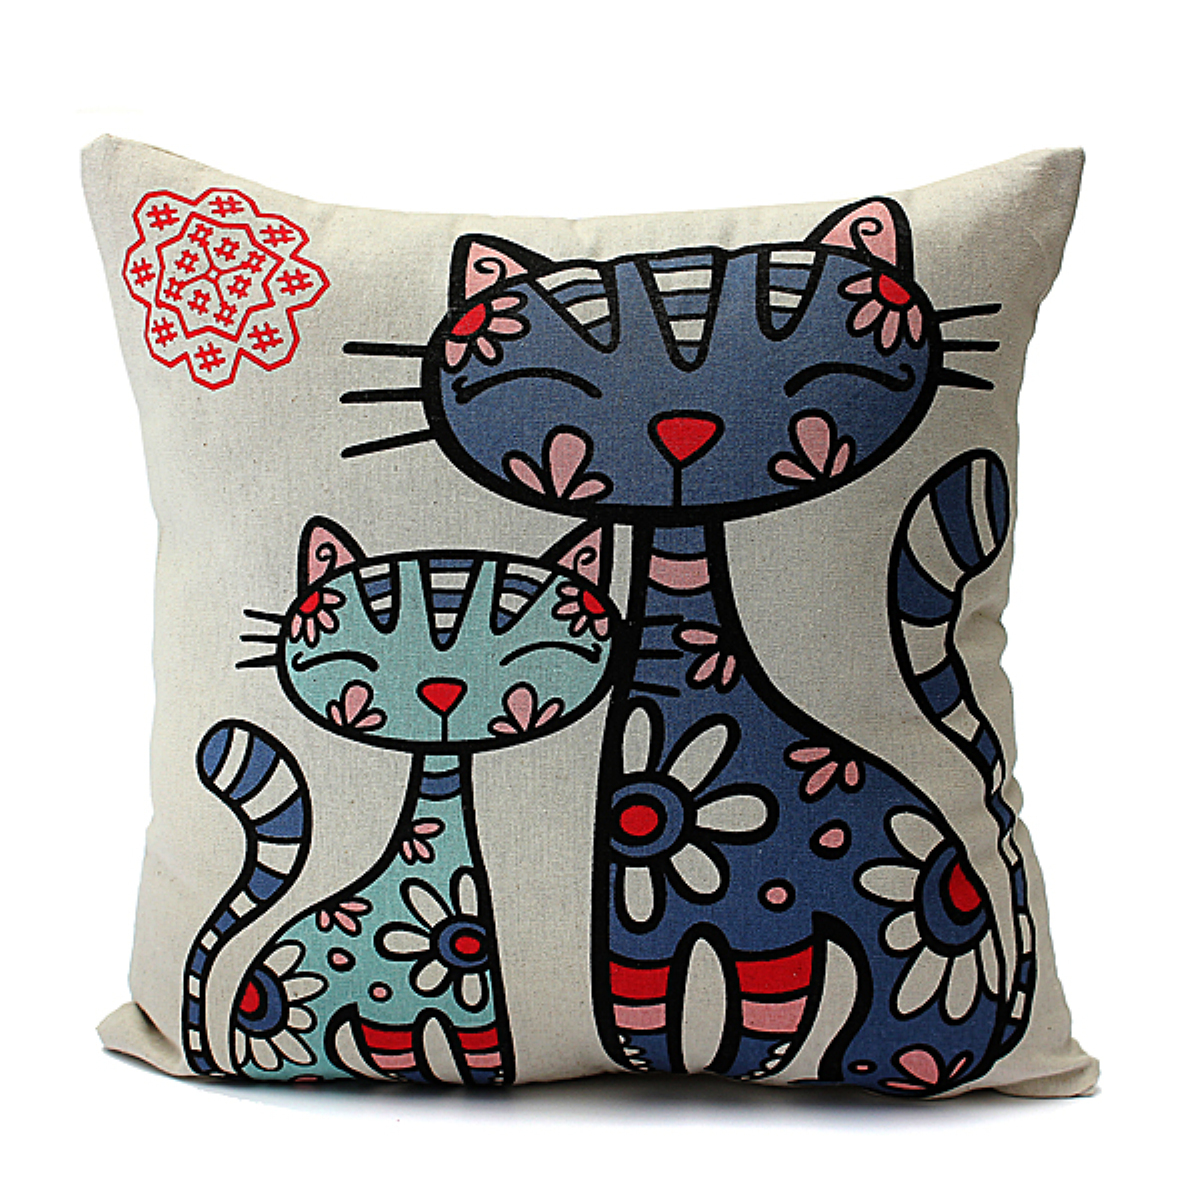 Chein chat animal housse de coussin canap taie d 39 oreiller - Housse coussin canape ...